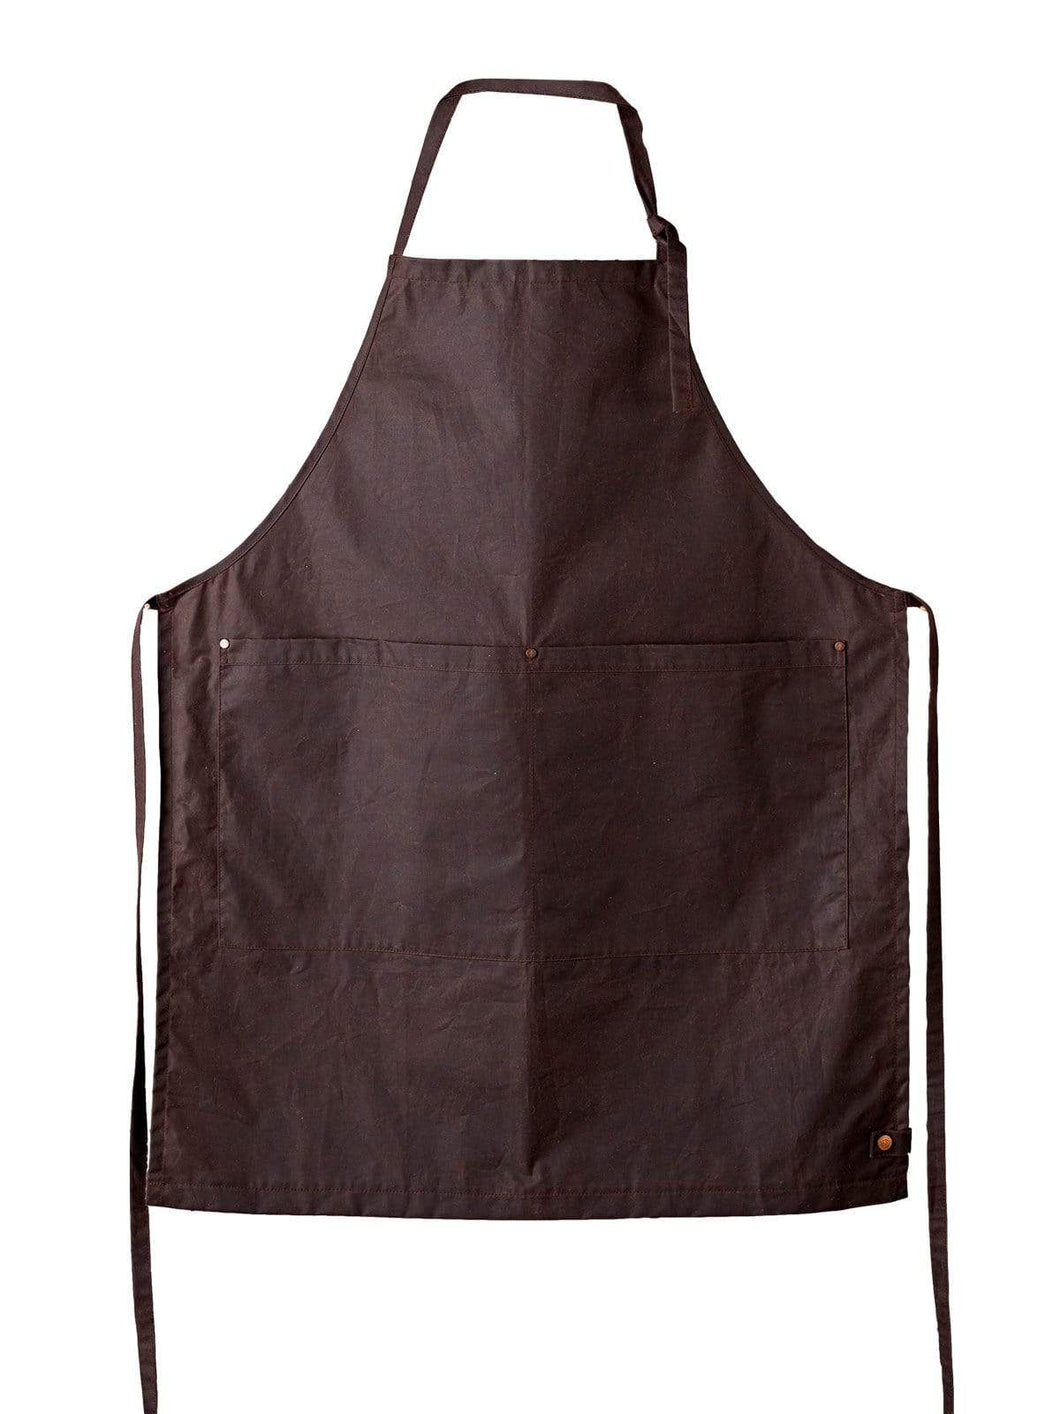 Fieldware Co Apron Rustic Hardwearing Waxed Cotton Apron (various colours)